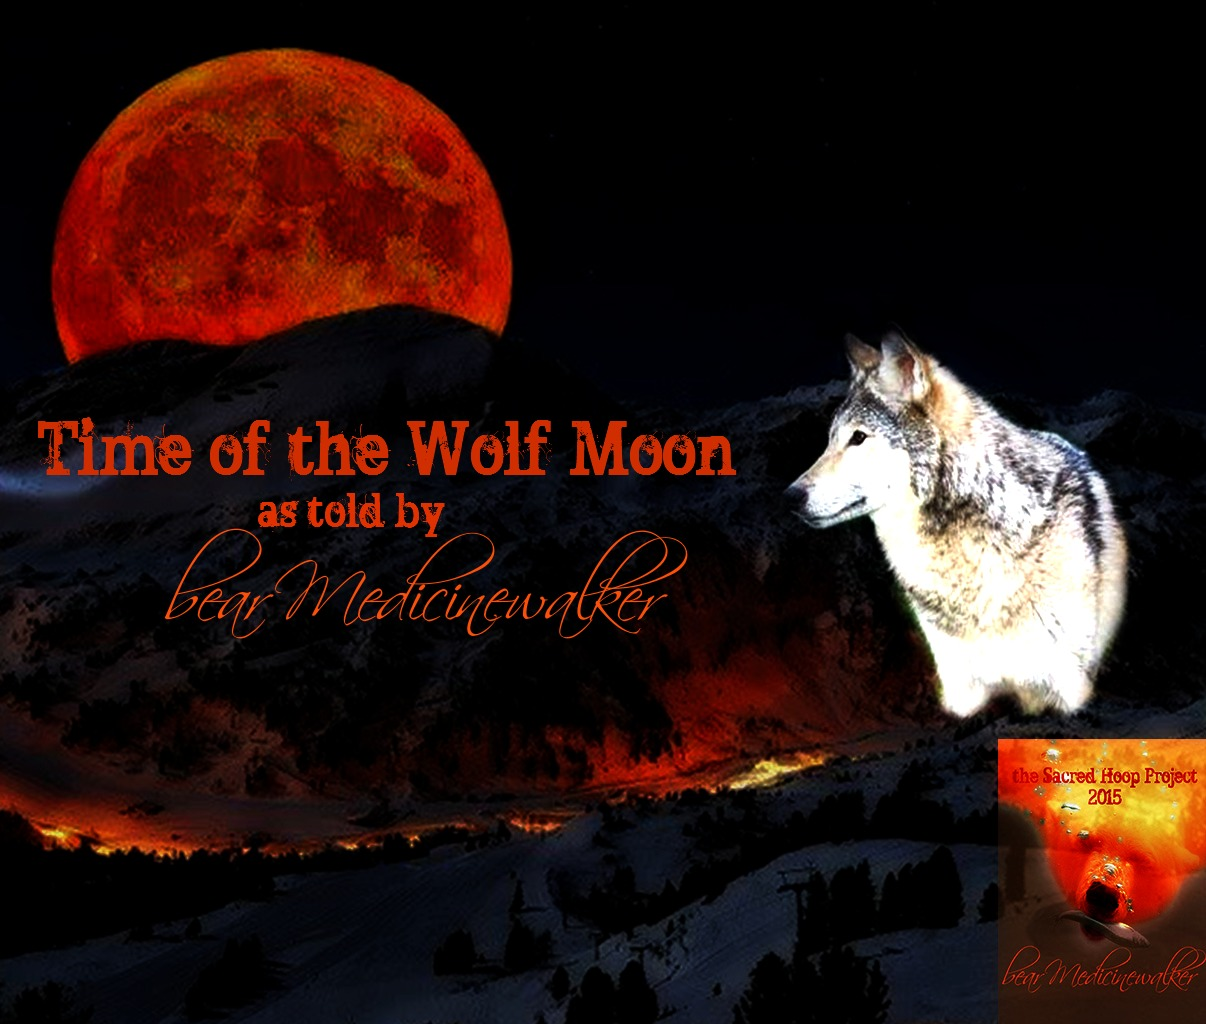 the time of the wolf moon